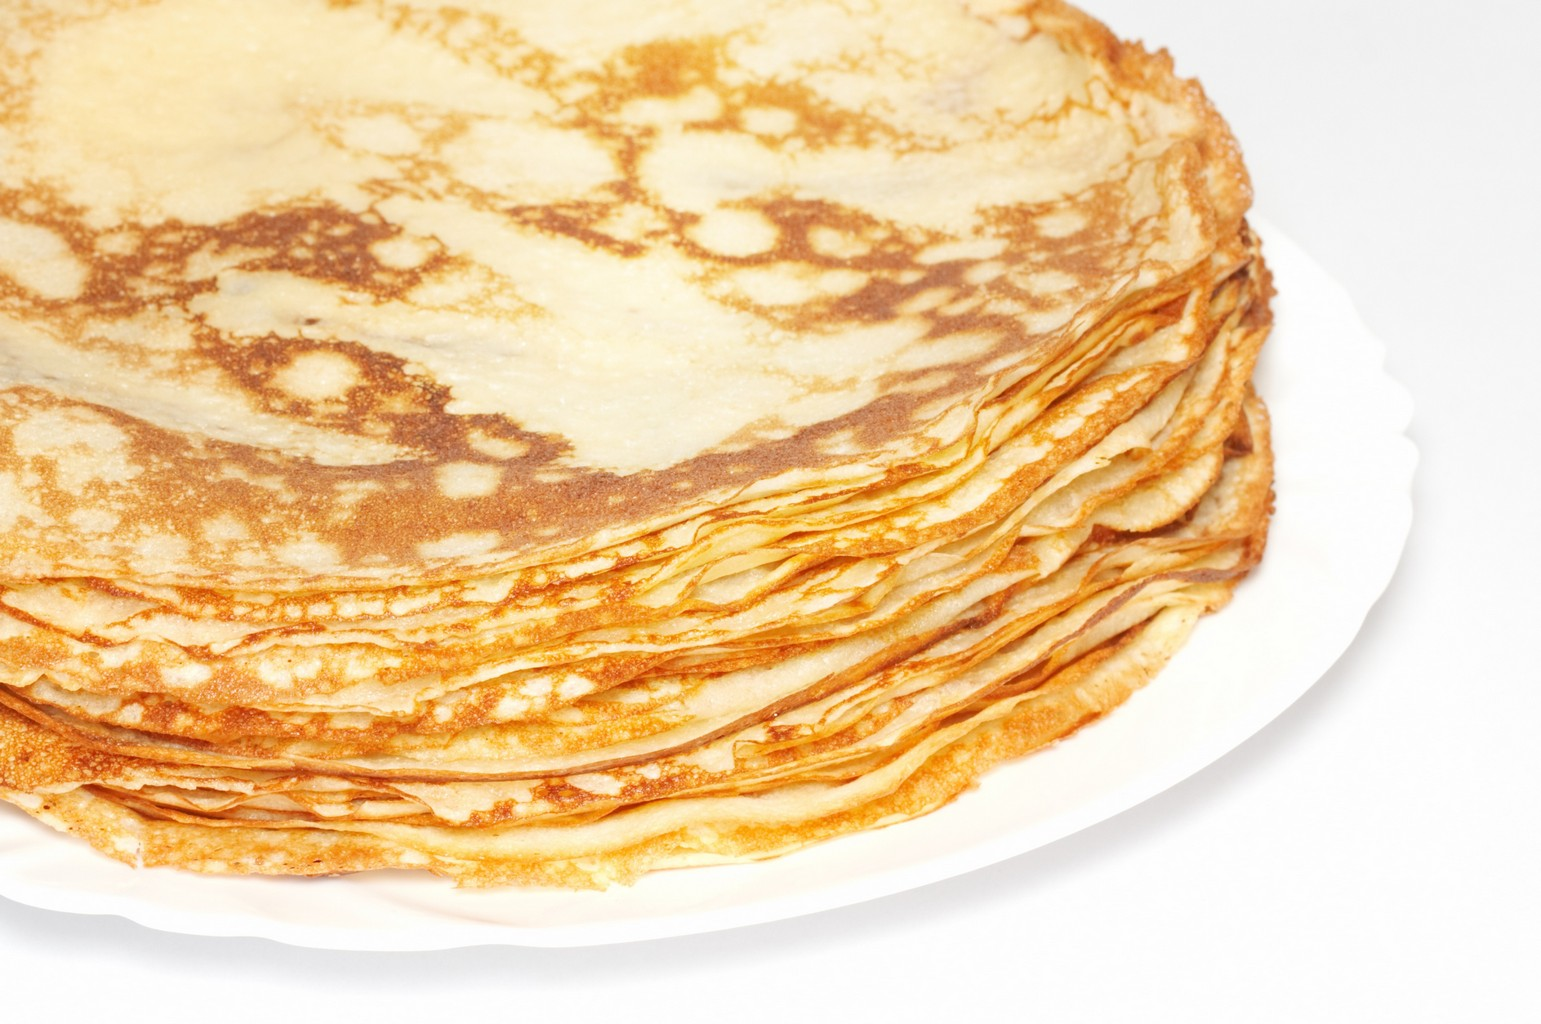 Ricette bimby crepes dolci